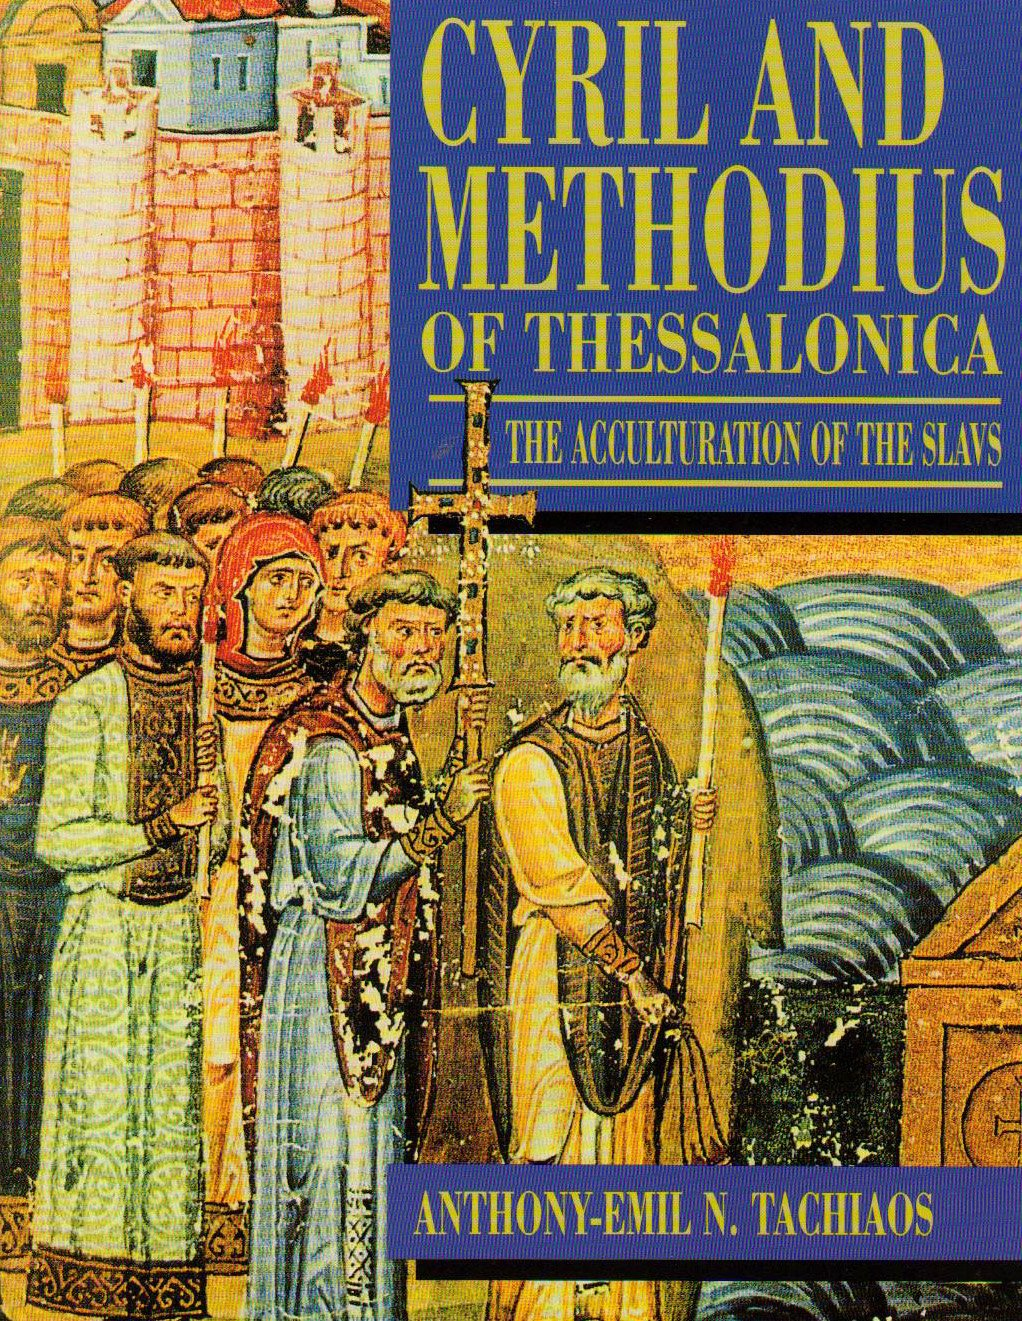 Download Cyril and Methodius of Thessalonica: The Acculturation of the Slavs pdf epub